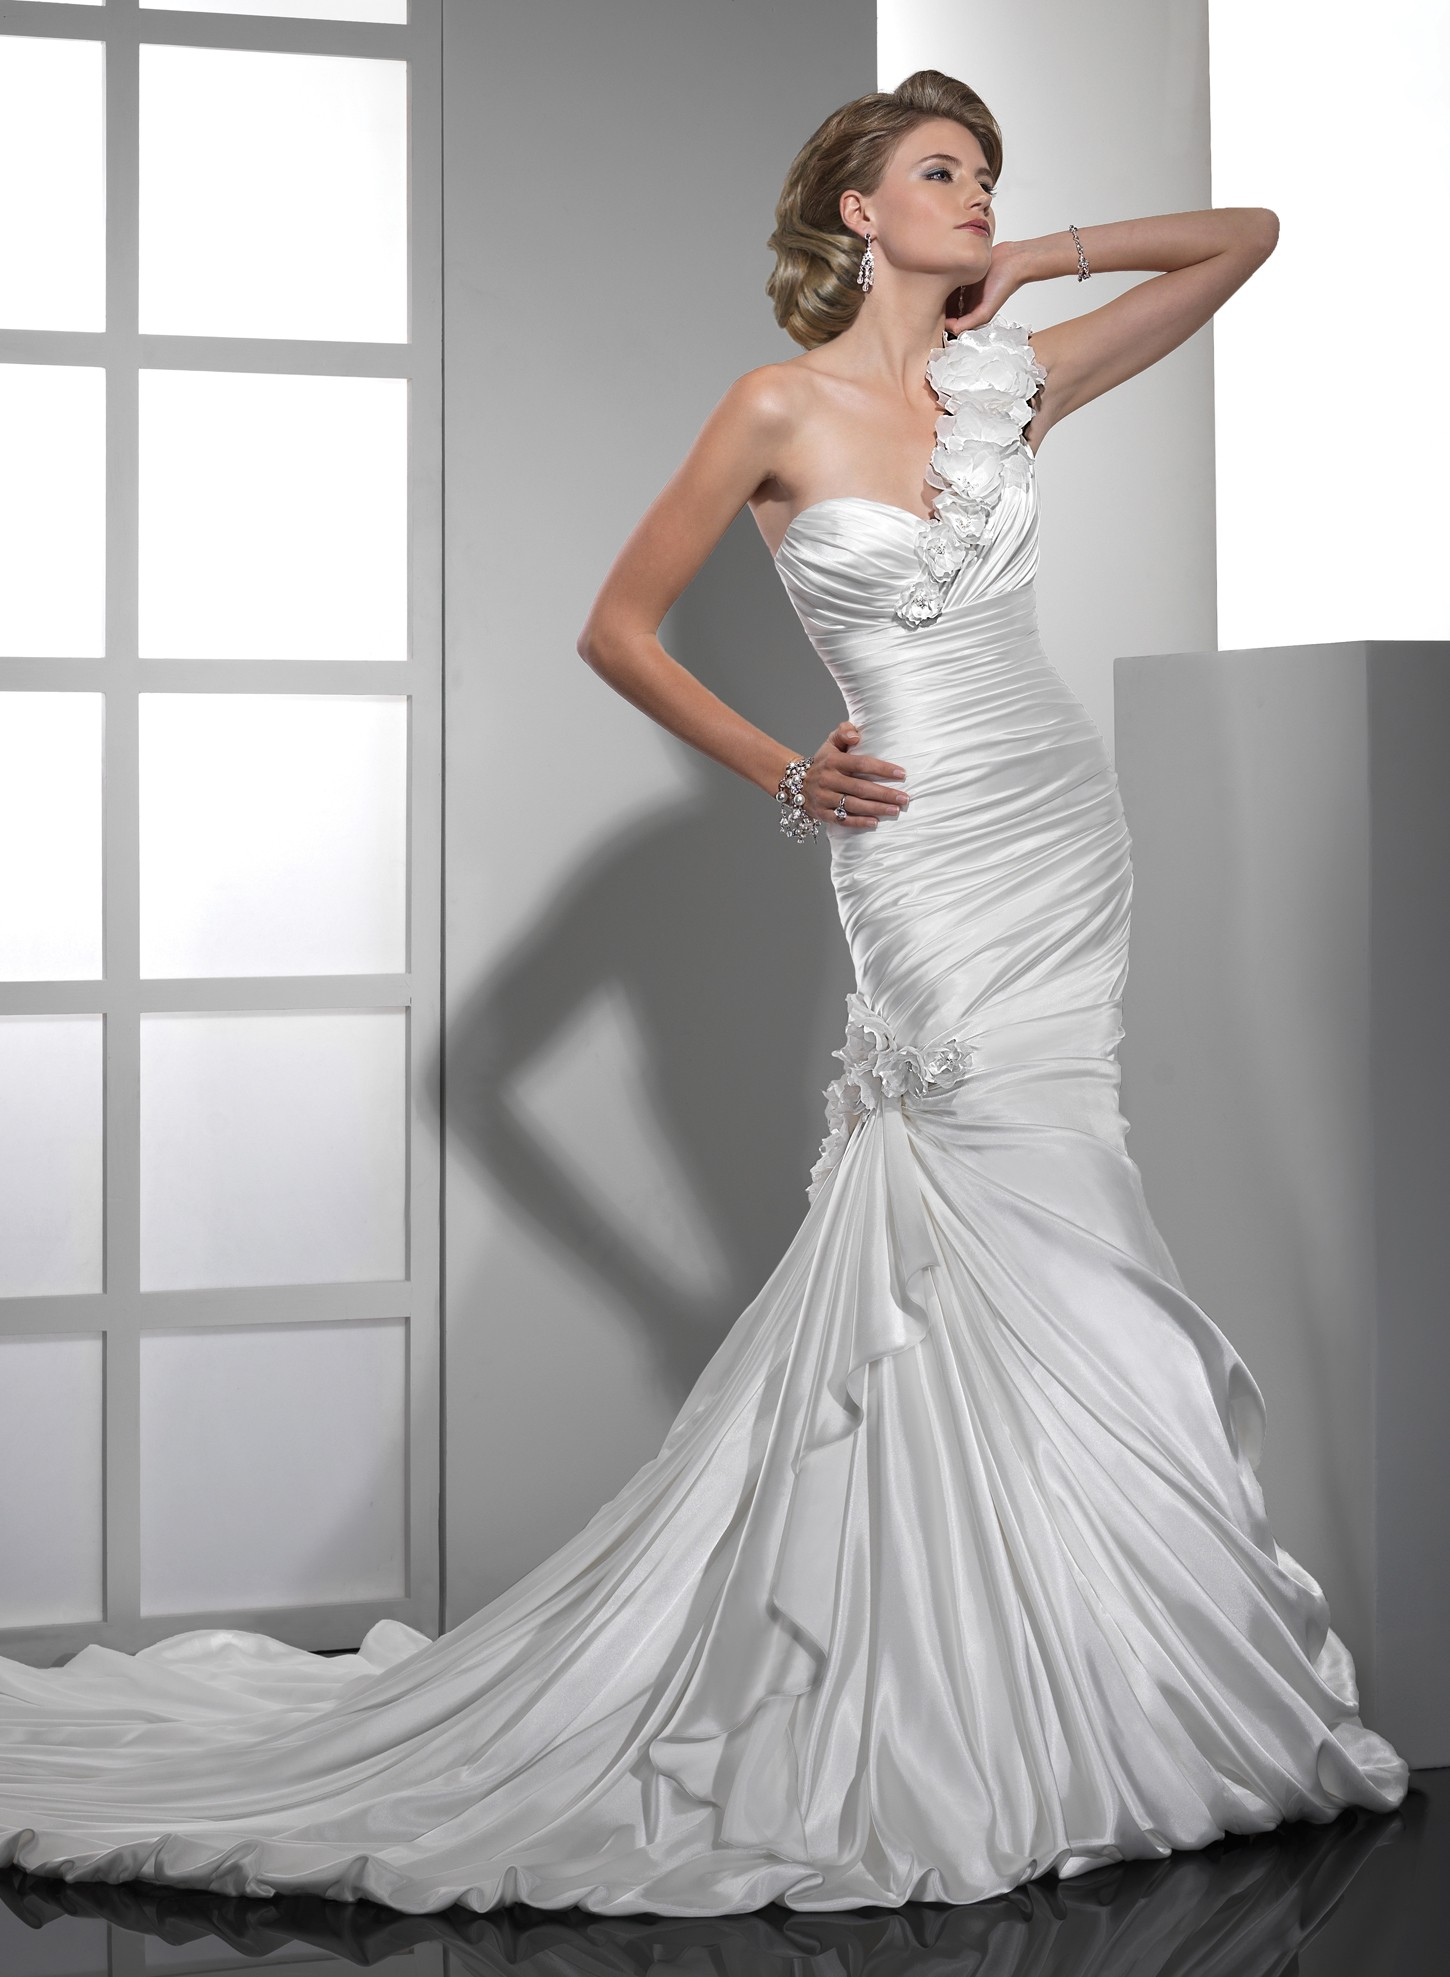 Satin mermaid wedding dress with one shoulder sangmaestro for Satin sweetheart mermaid wedding dress